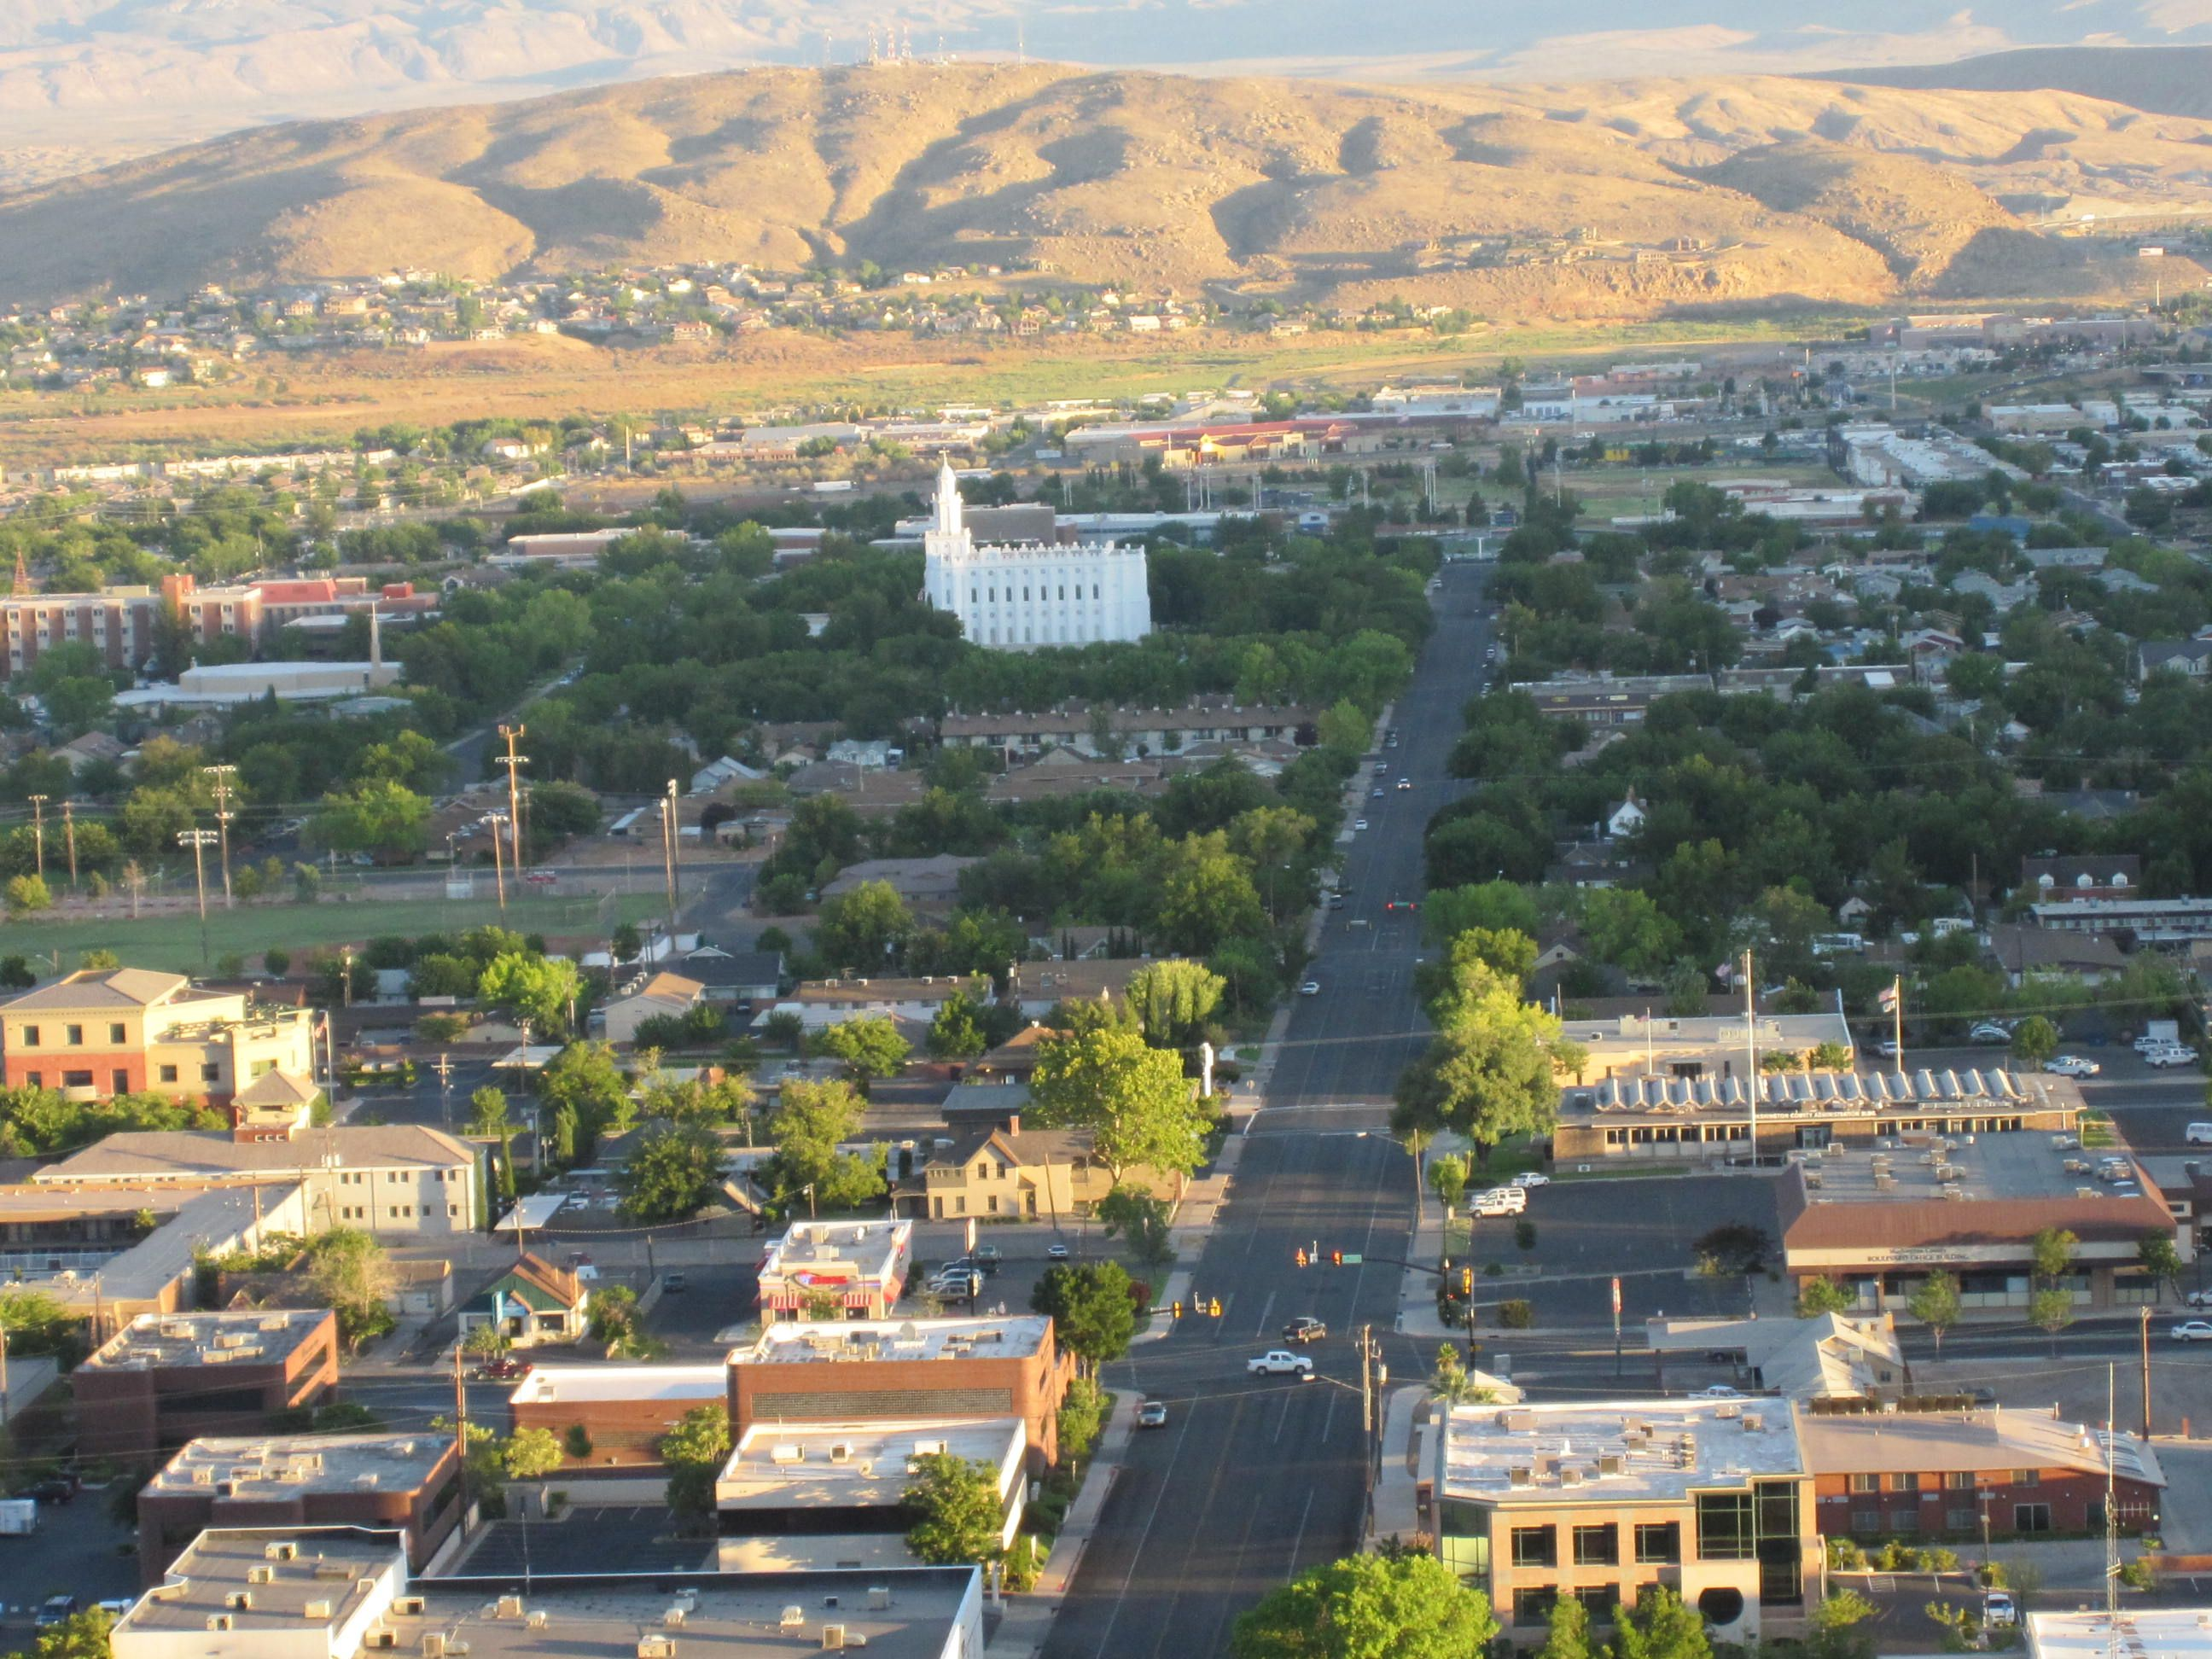 Downtown St George Just As The Sun Is Setting St George Utah St George Utah